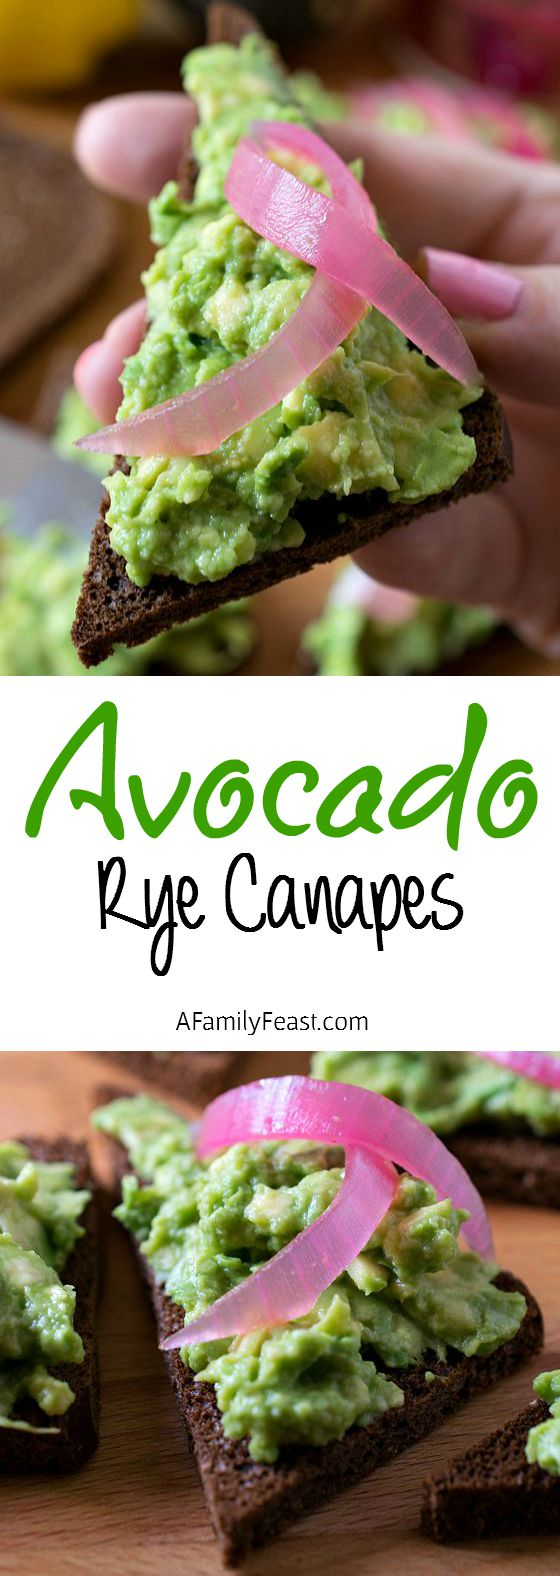 Avocado Rye Canapés - An easy and delicious recipe that is great as an appetizer or a light lunch!  AFamilyFeast.com